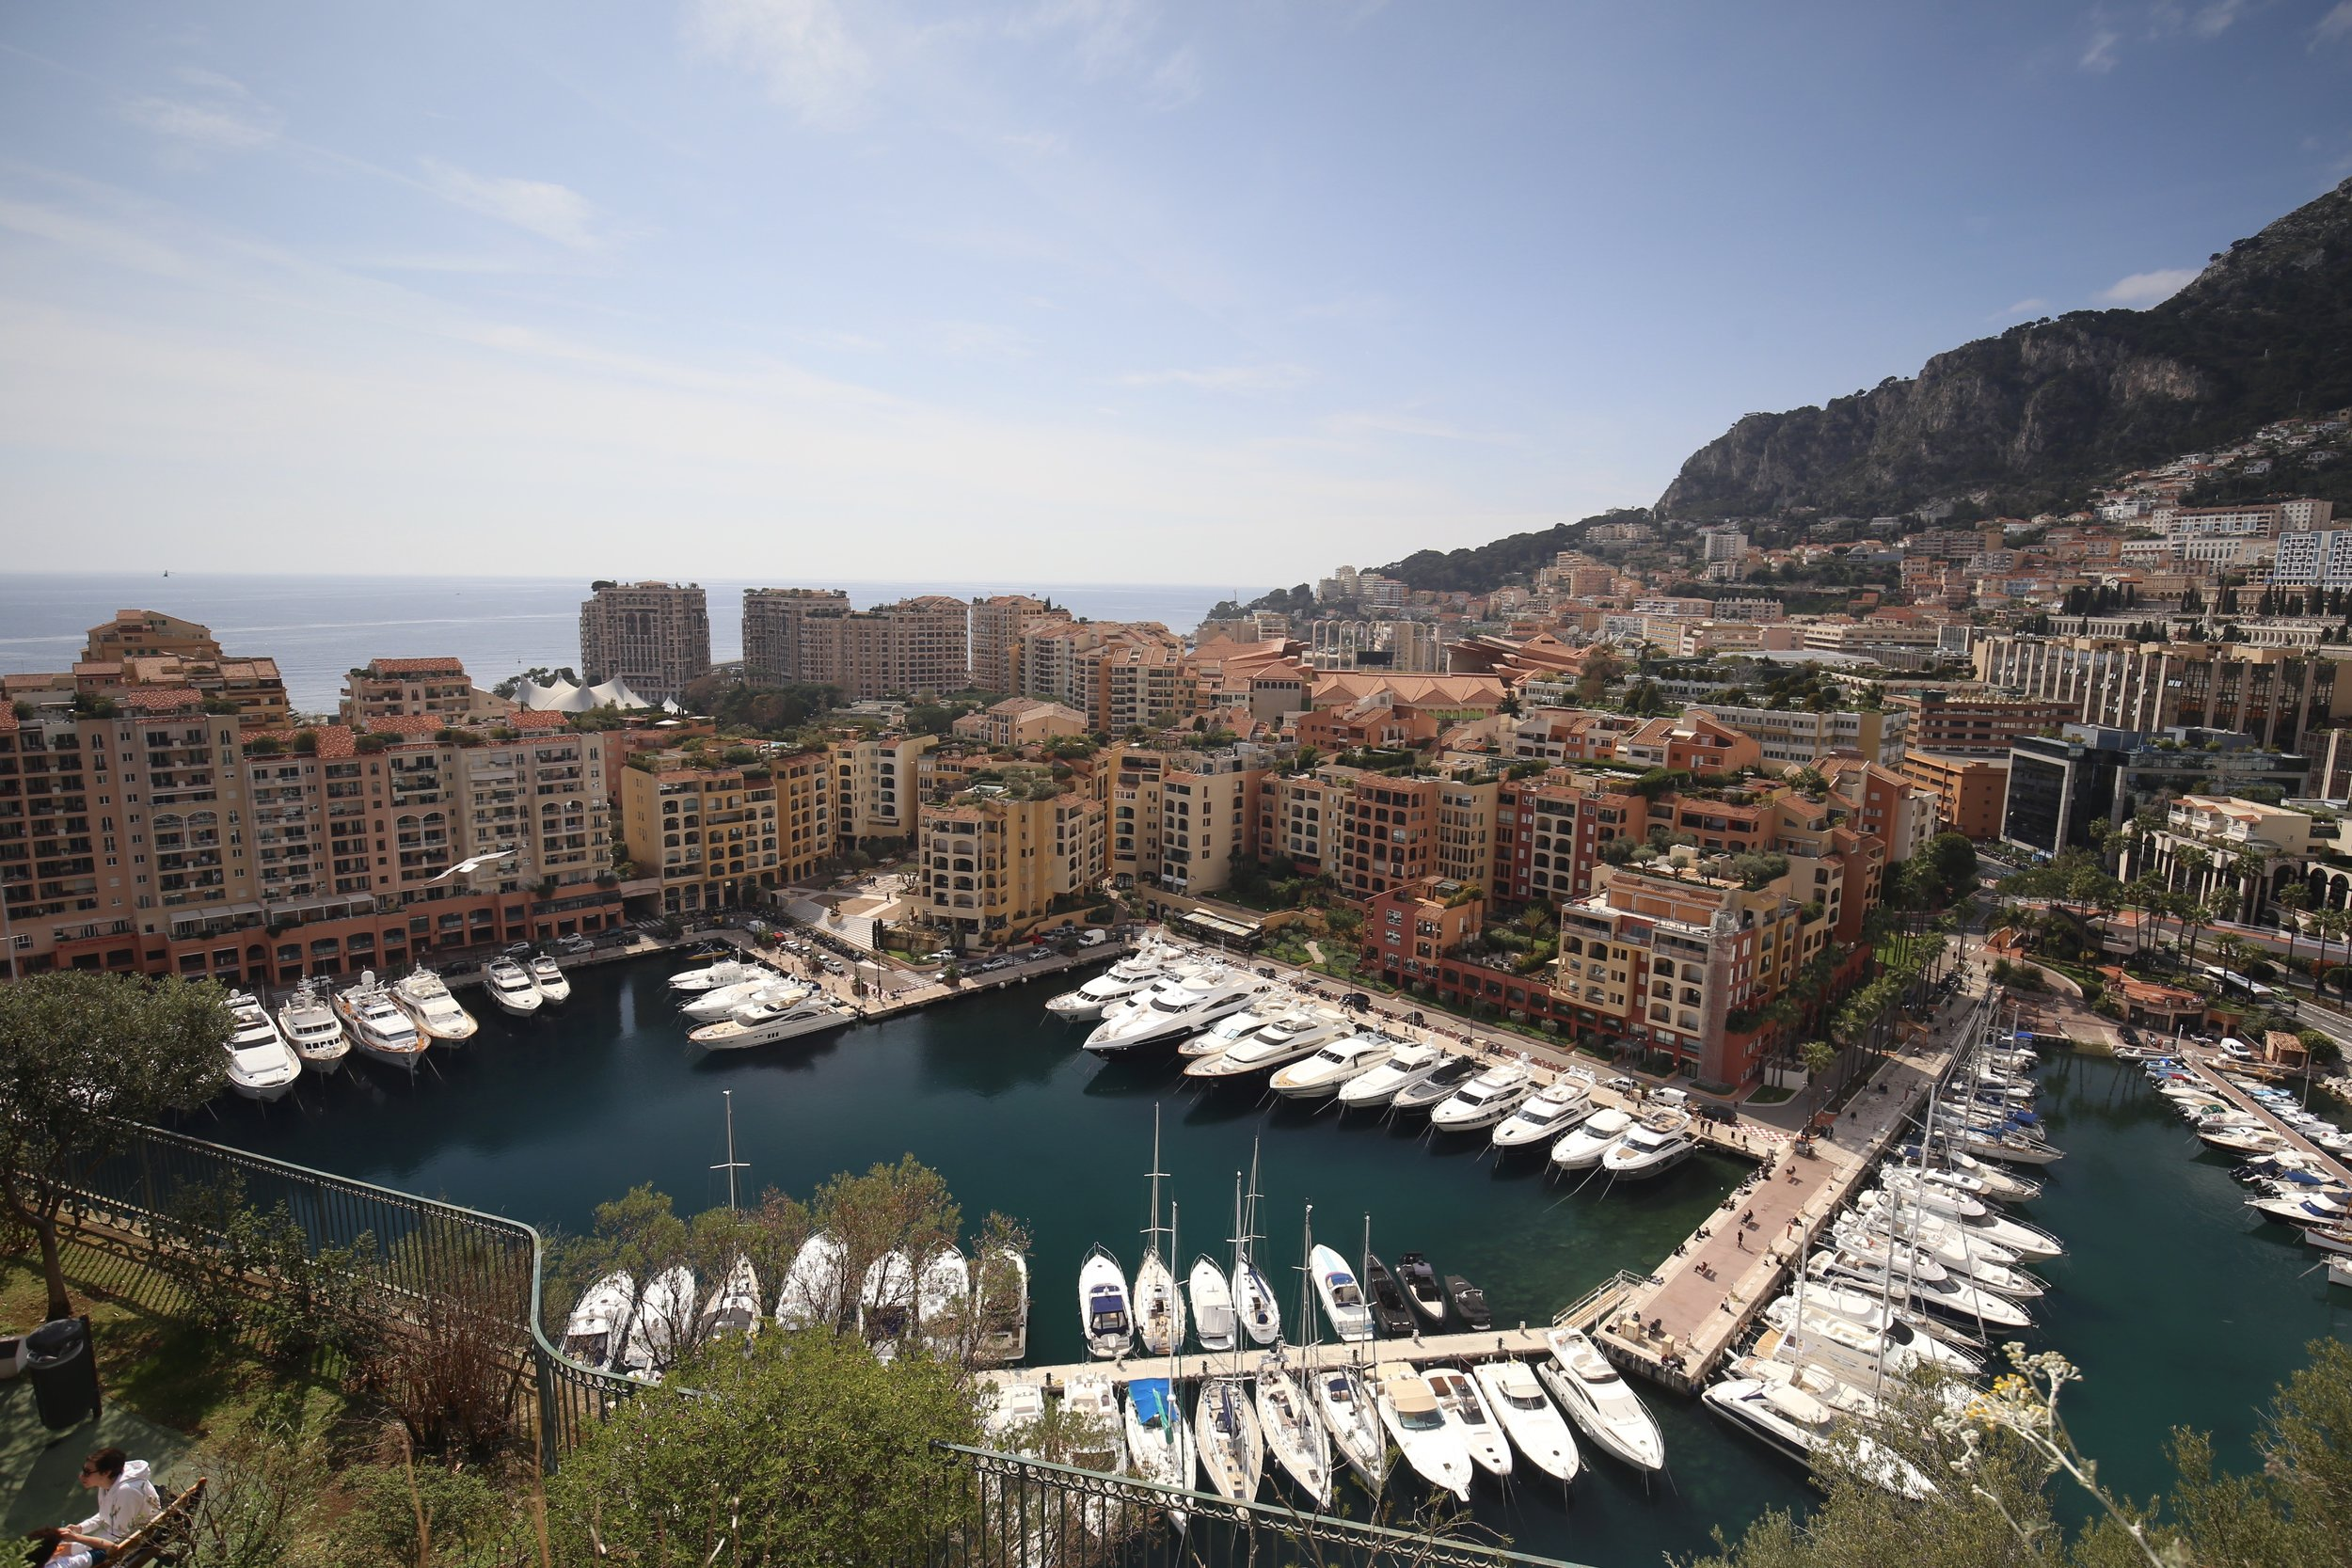 View over the harbour of Monaco, with luxury yachts all lined up and gardens laid out below.